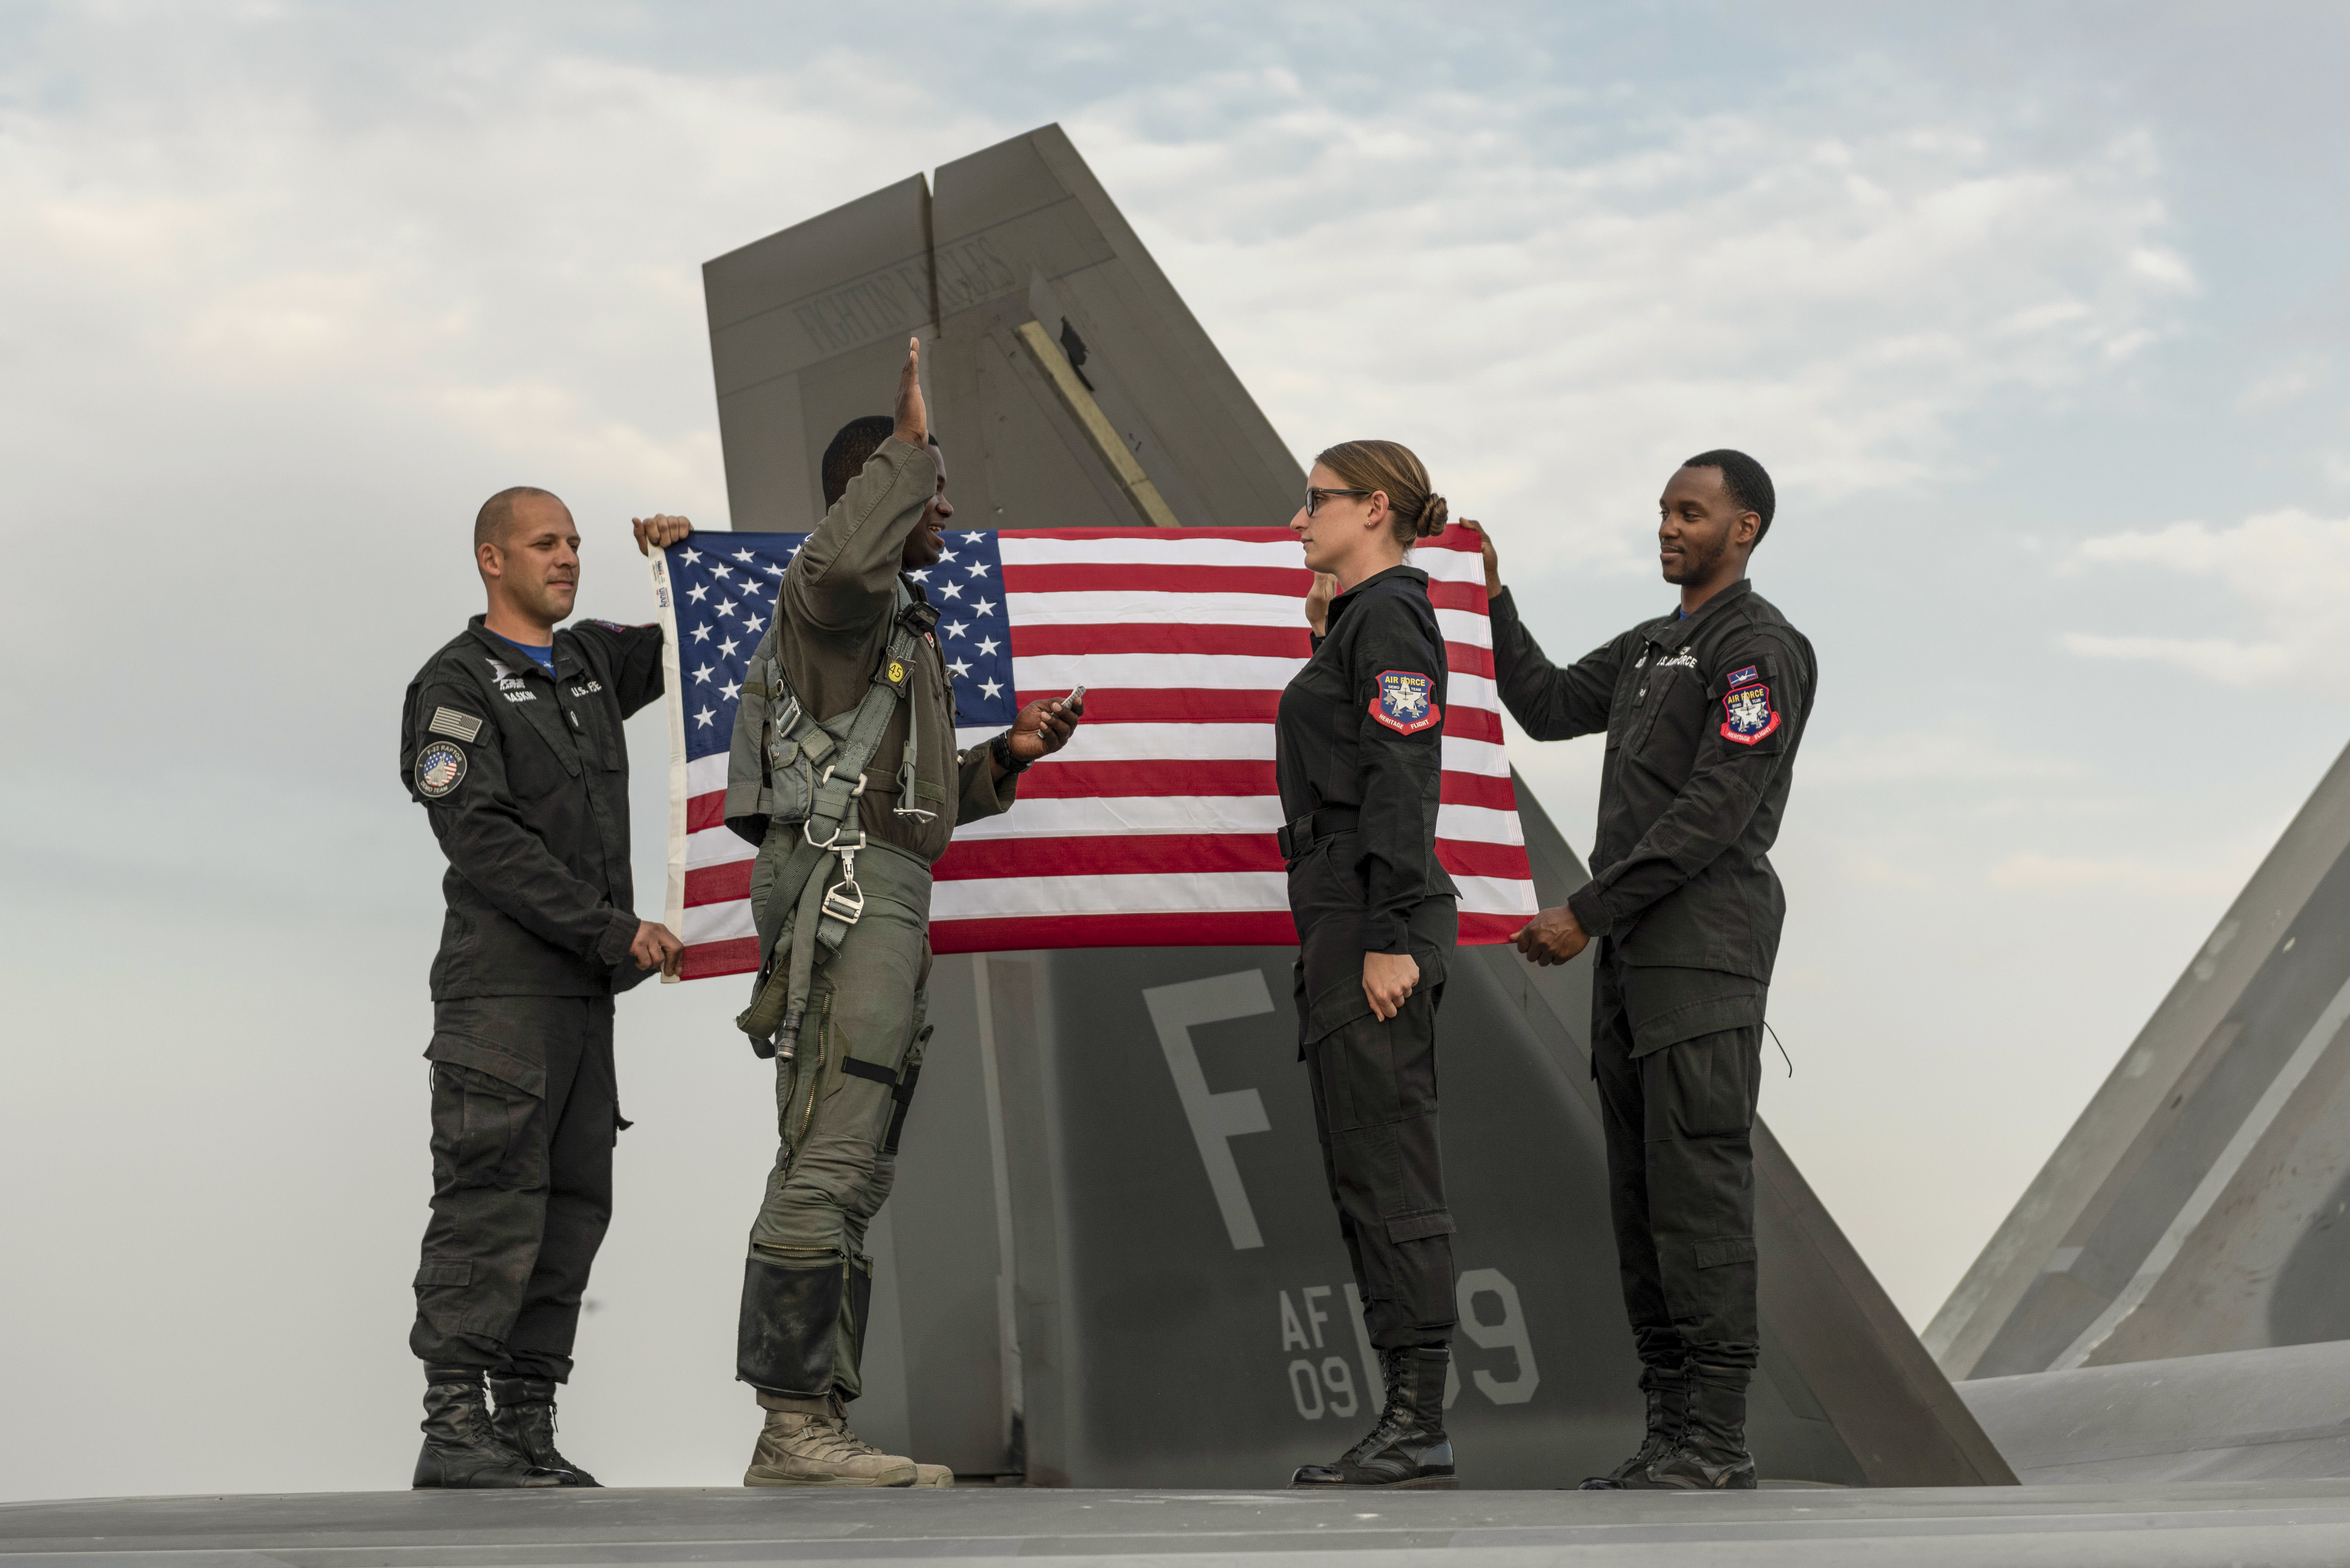 Air Force Lt. Col. Paul Lopez, second from left, commander of the Air Combat Command F-22 Demonstration Team, officiates a reenlistment ceremony for Staff Sgt. Annemarie Prozzillo, an aircrew flight equipment technician for the team, at the Dubai Airshow in the United Arab Emirates, Nov. 18, 2019.